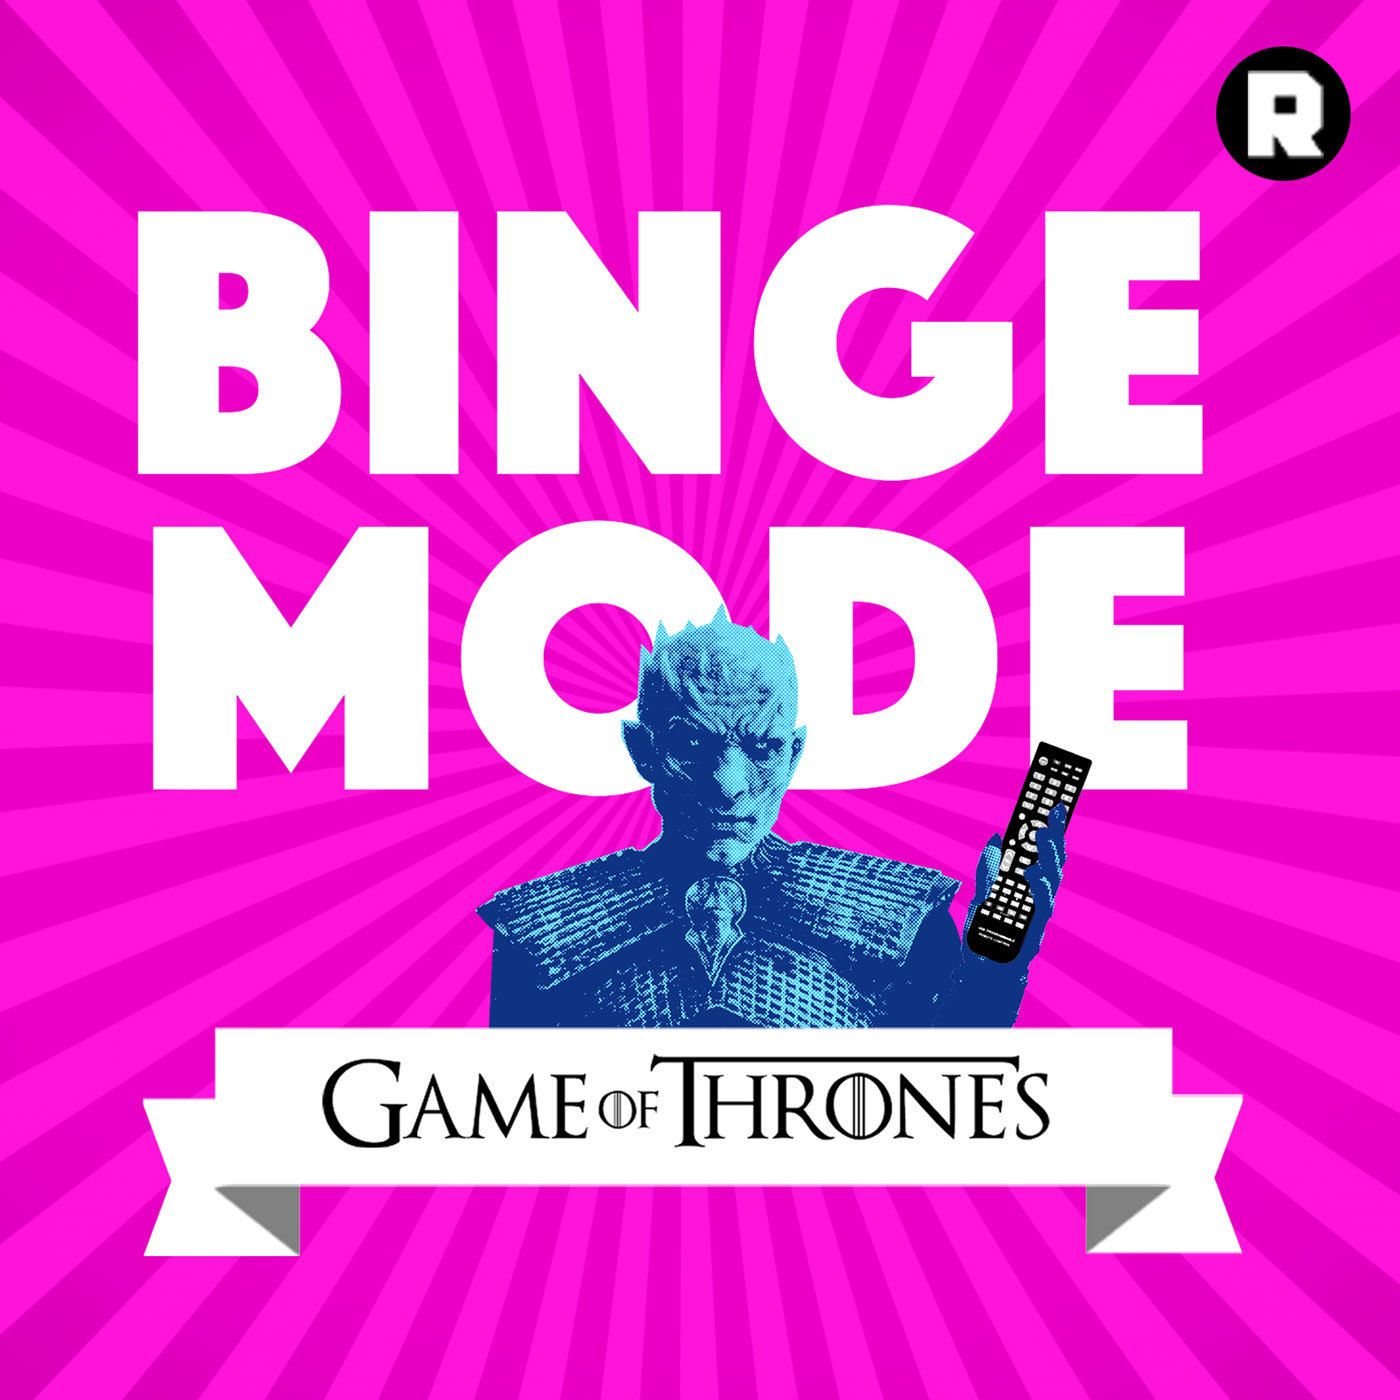 S1E5: The Wolf and the Lion | Game of Thrones